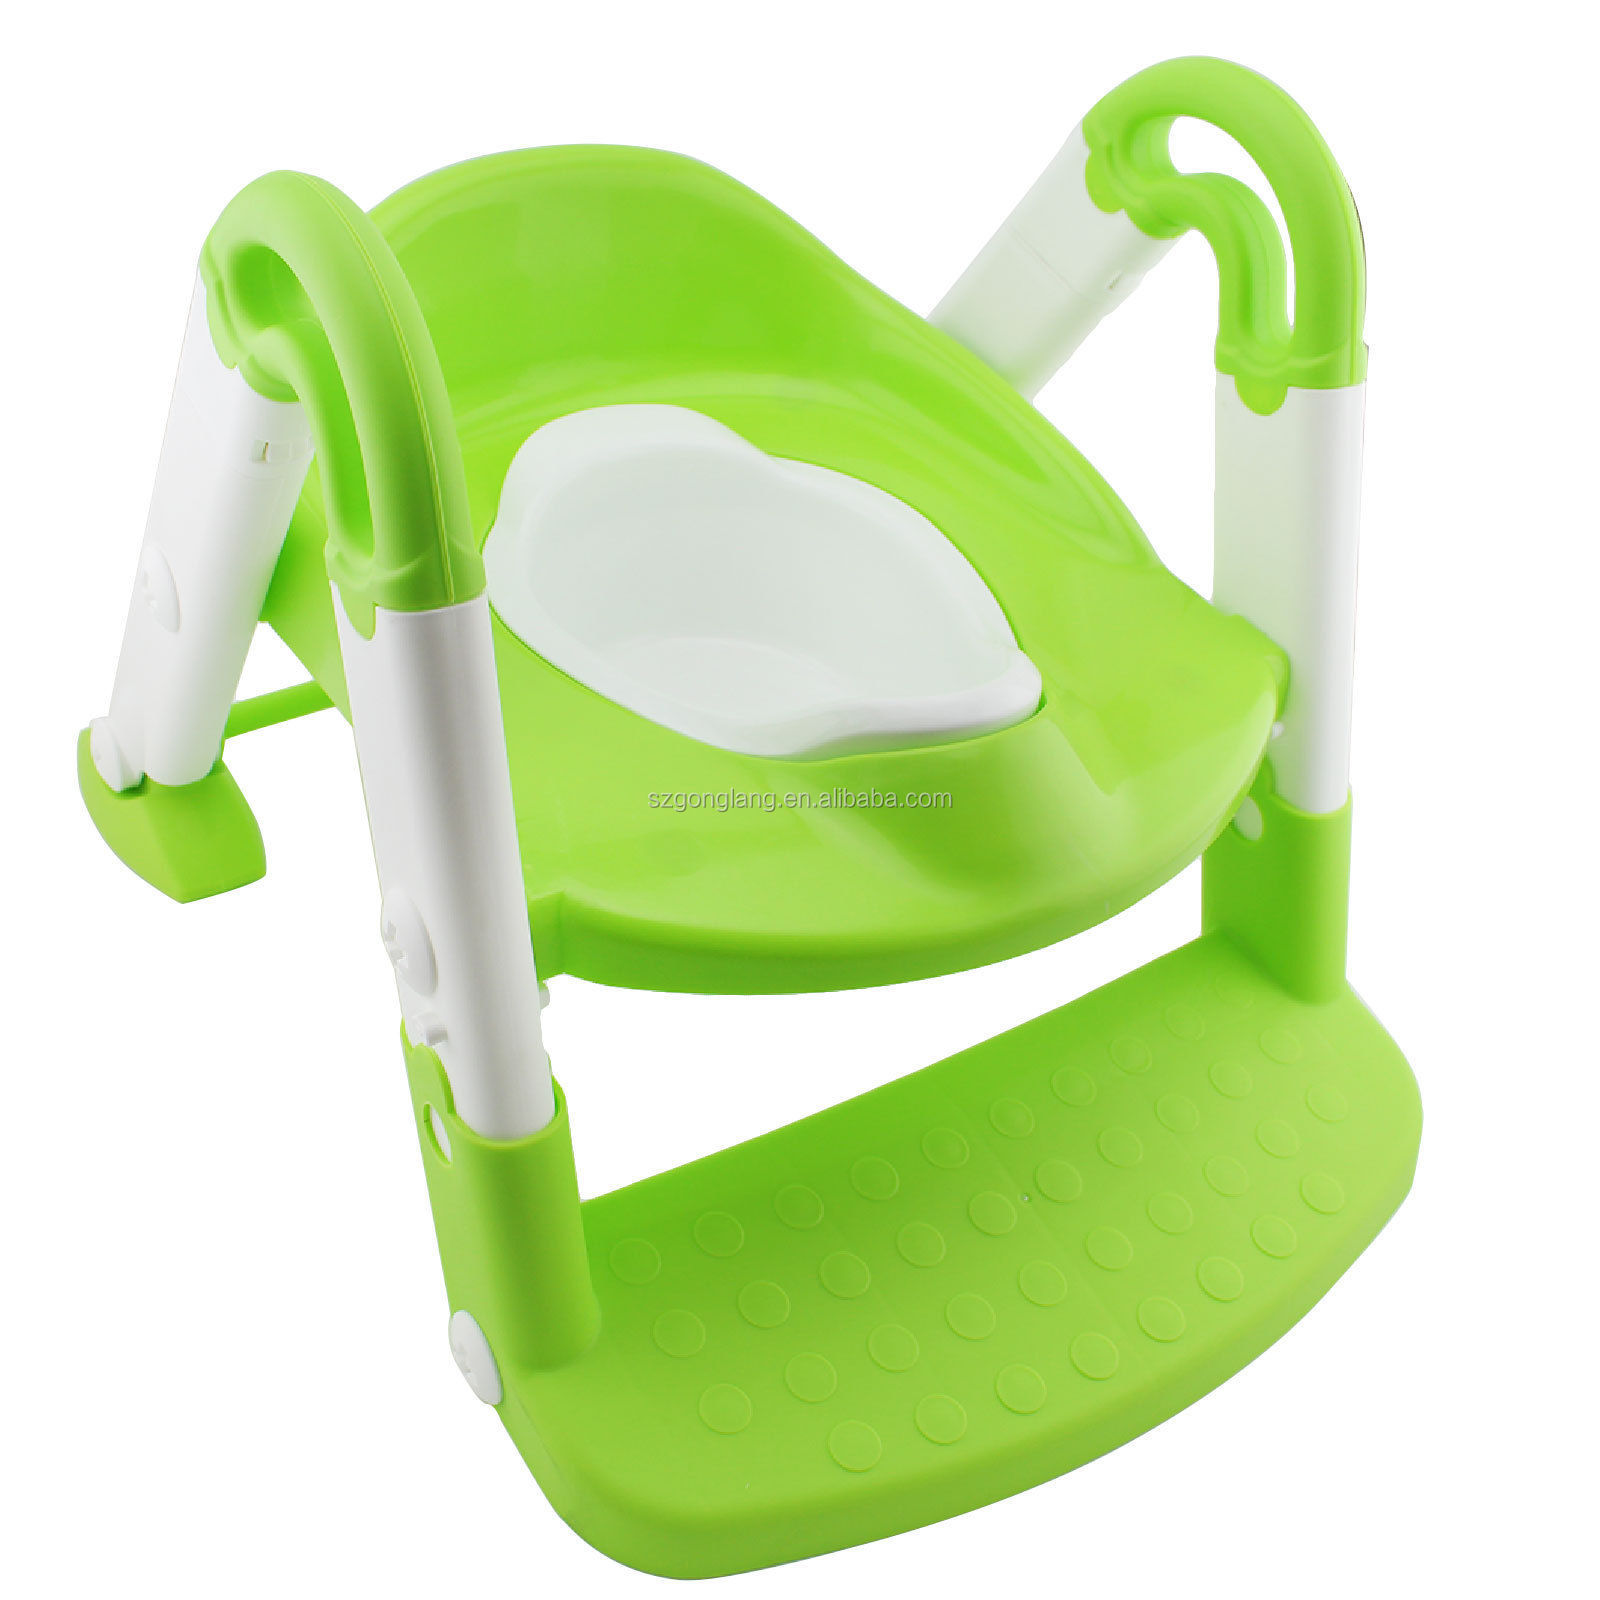 3 in 1 potty chair folding camp chairs alibaba manufacturer directory suppliers manufacturers